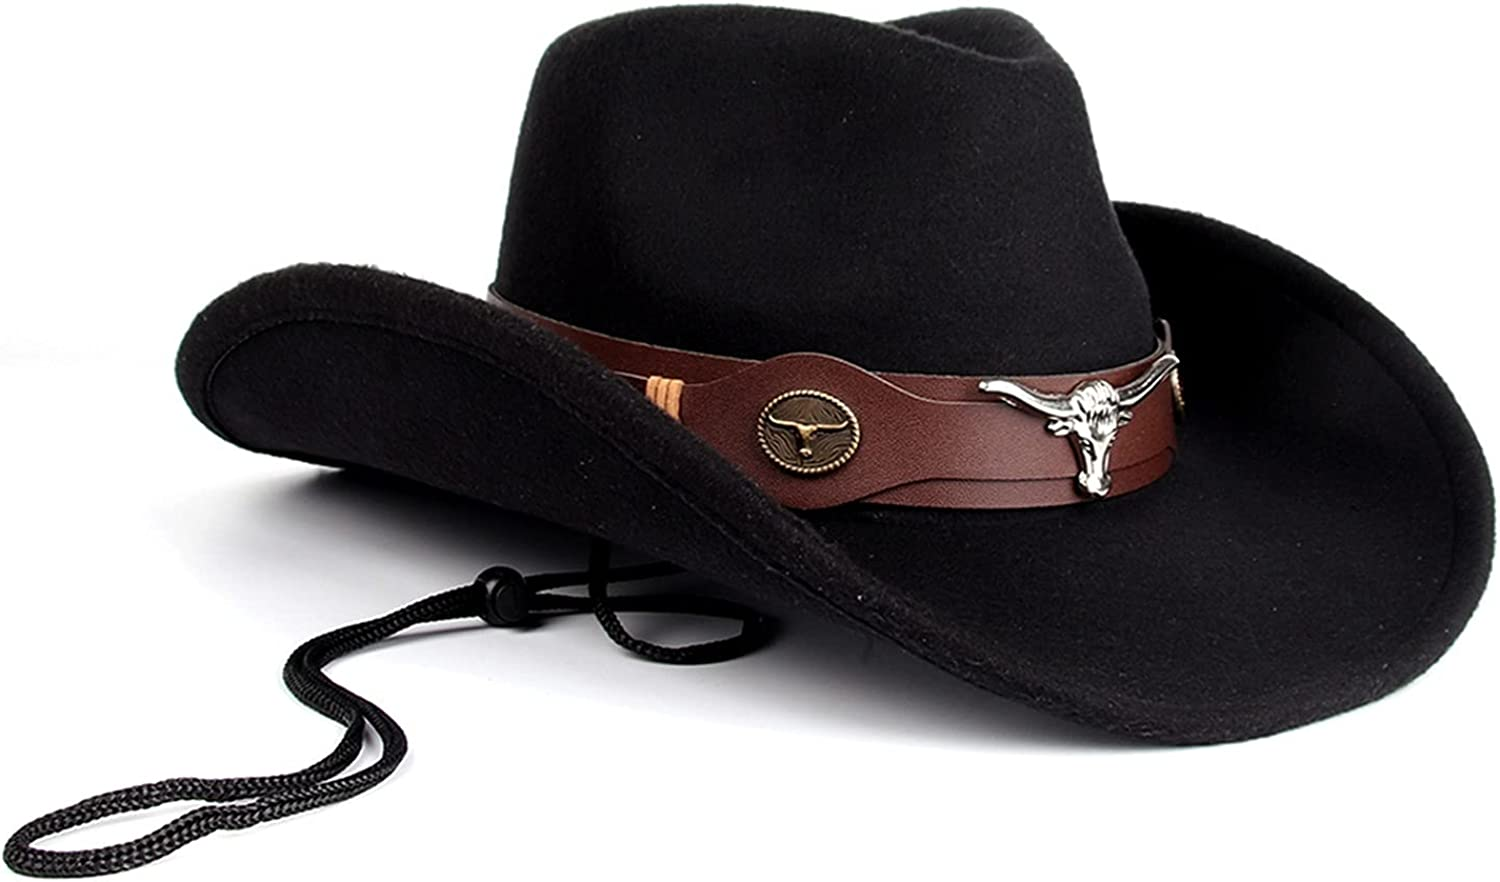 Felt Cowboy Very popular Ranking TOP5 Hat for Men Outback Hats Brim Neck Roll Up and with